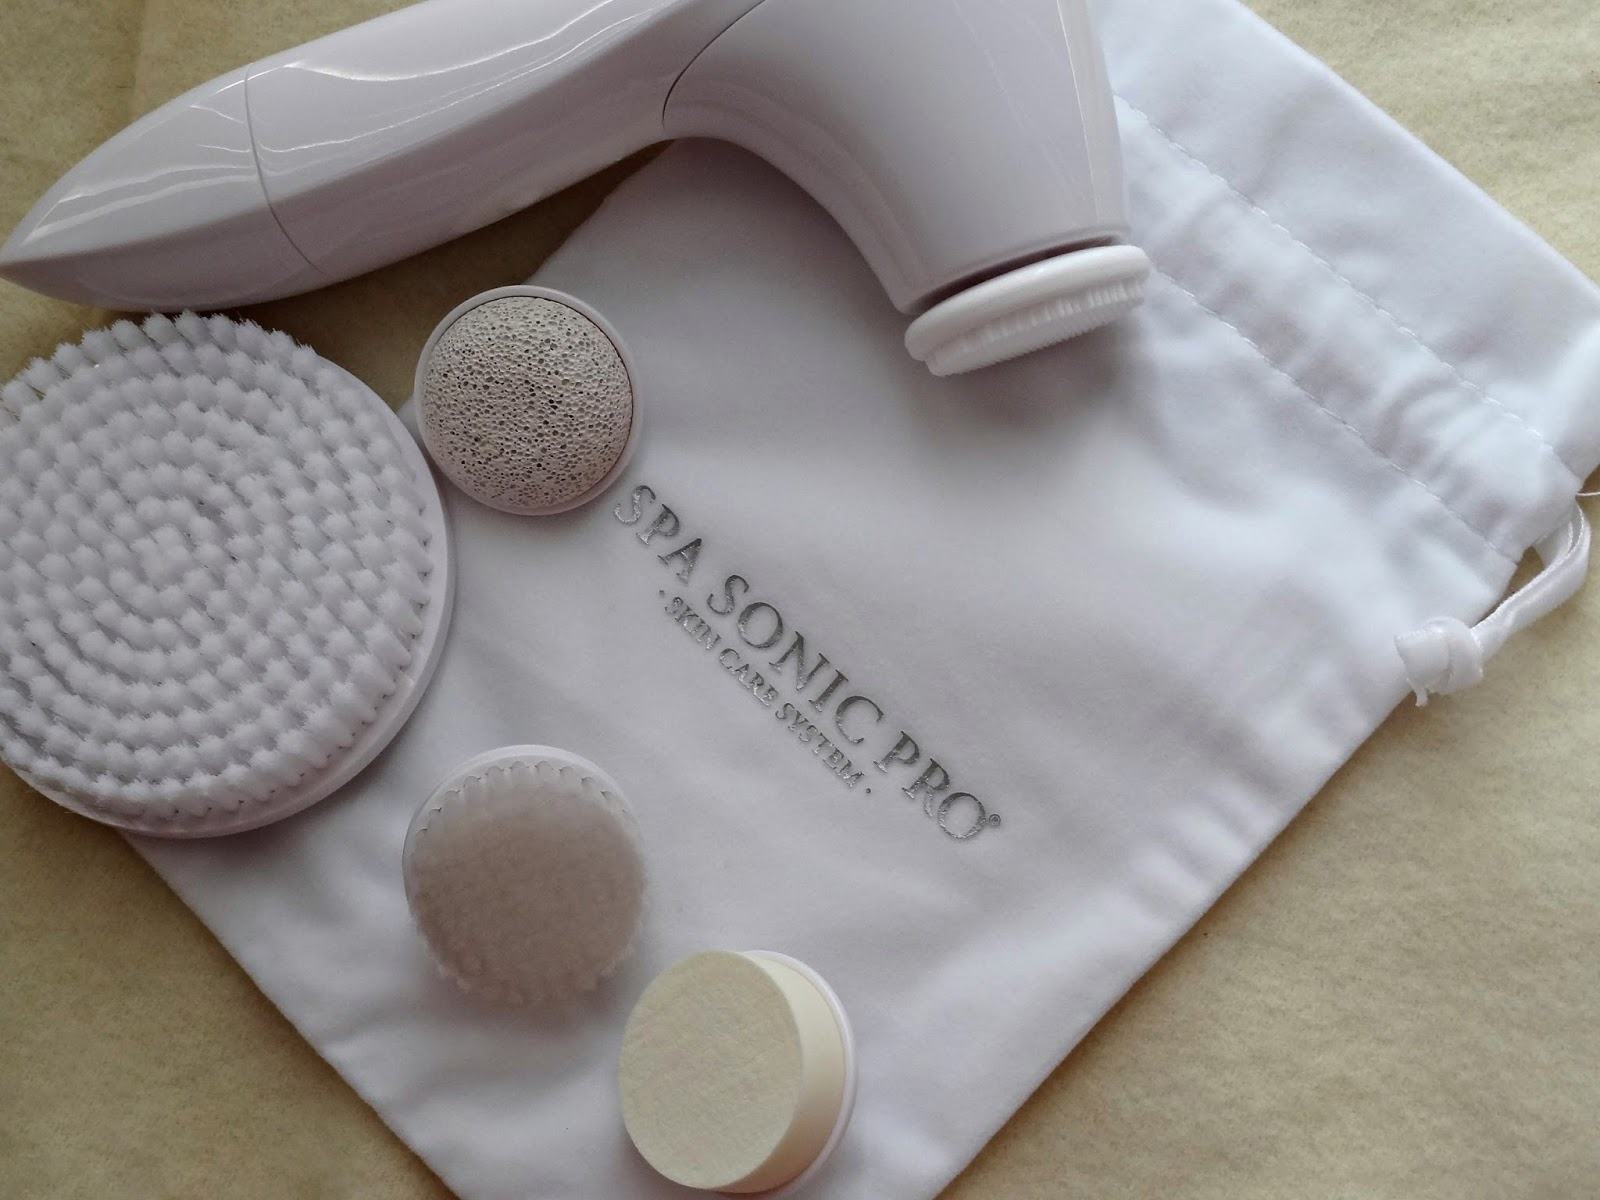 Spa Sonic Pro Skincare Cleansing System Review, Photos